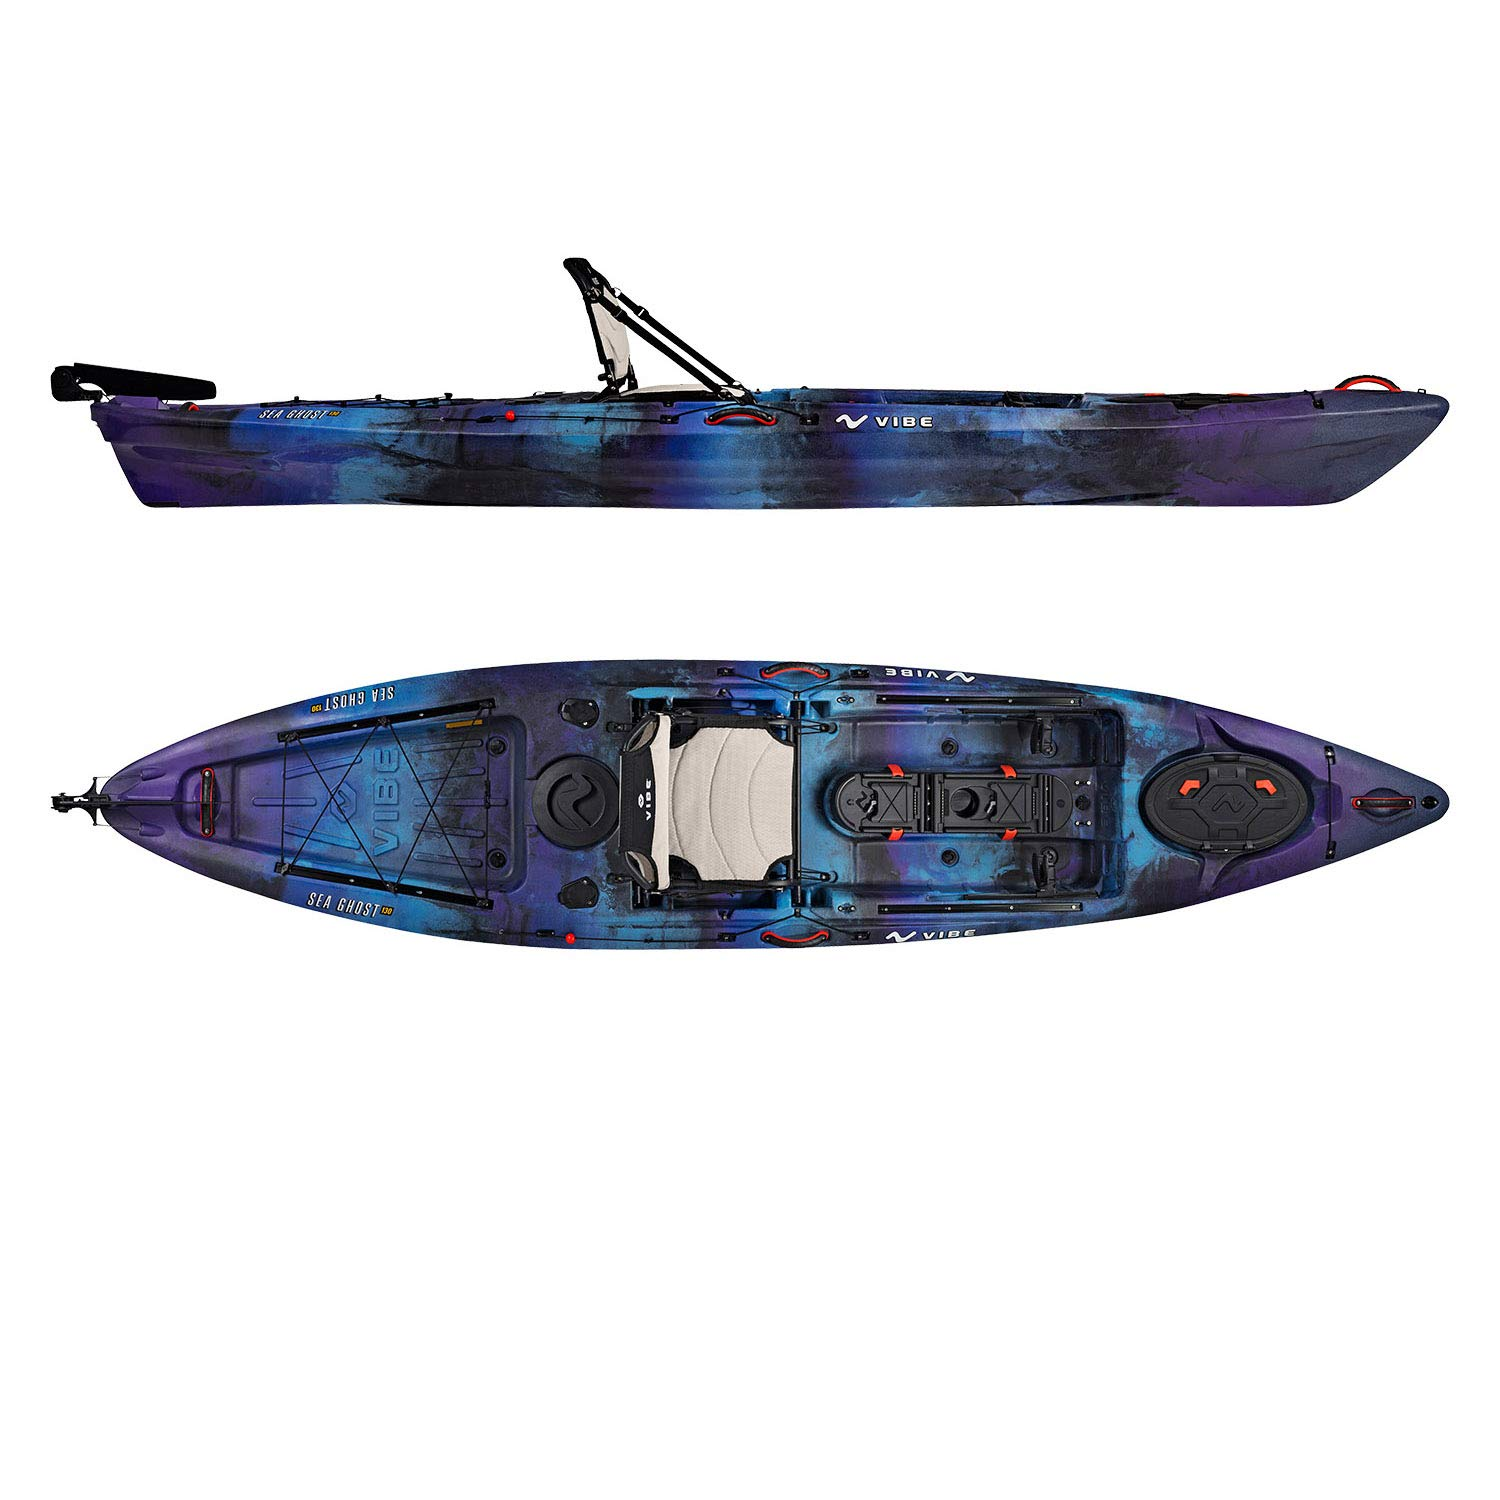 Vibe Kayaks Sea Ghost 130 | 13 Foot | Angler Sit On Top Fishing Kayak with Paddle and Adjustable Hero Comfort Seat (Galaxy)